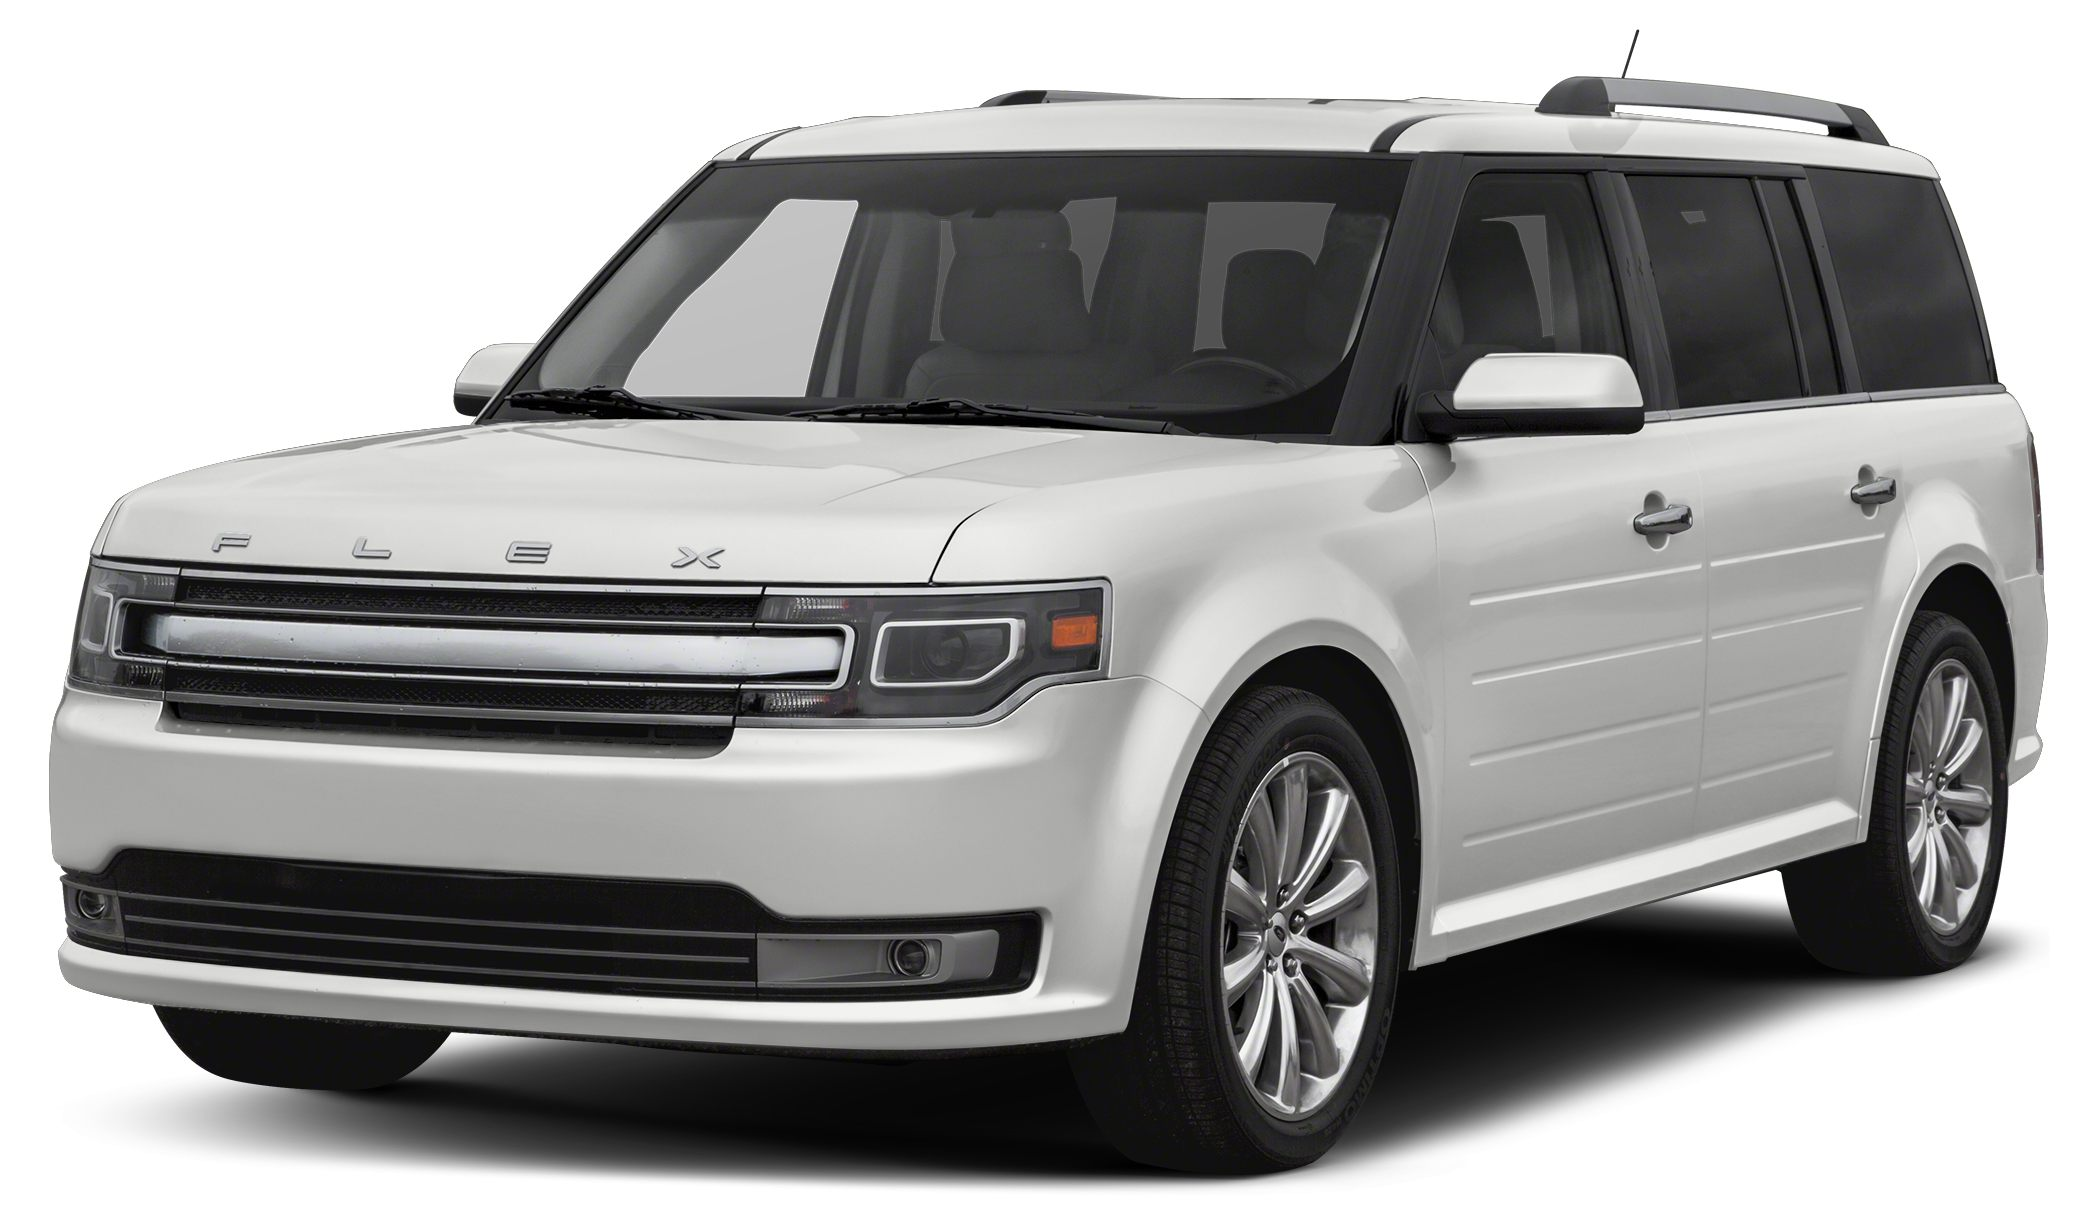 2016 Ford Flex SE Ford Flex is the modern way to move With bold lettering on the hood futuristic